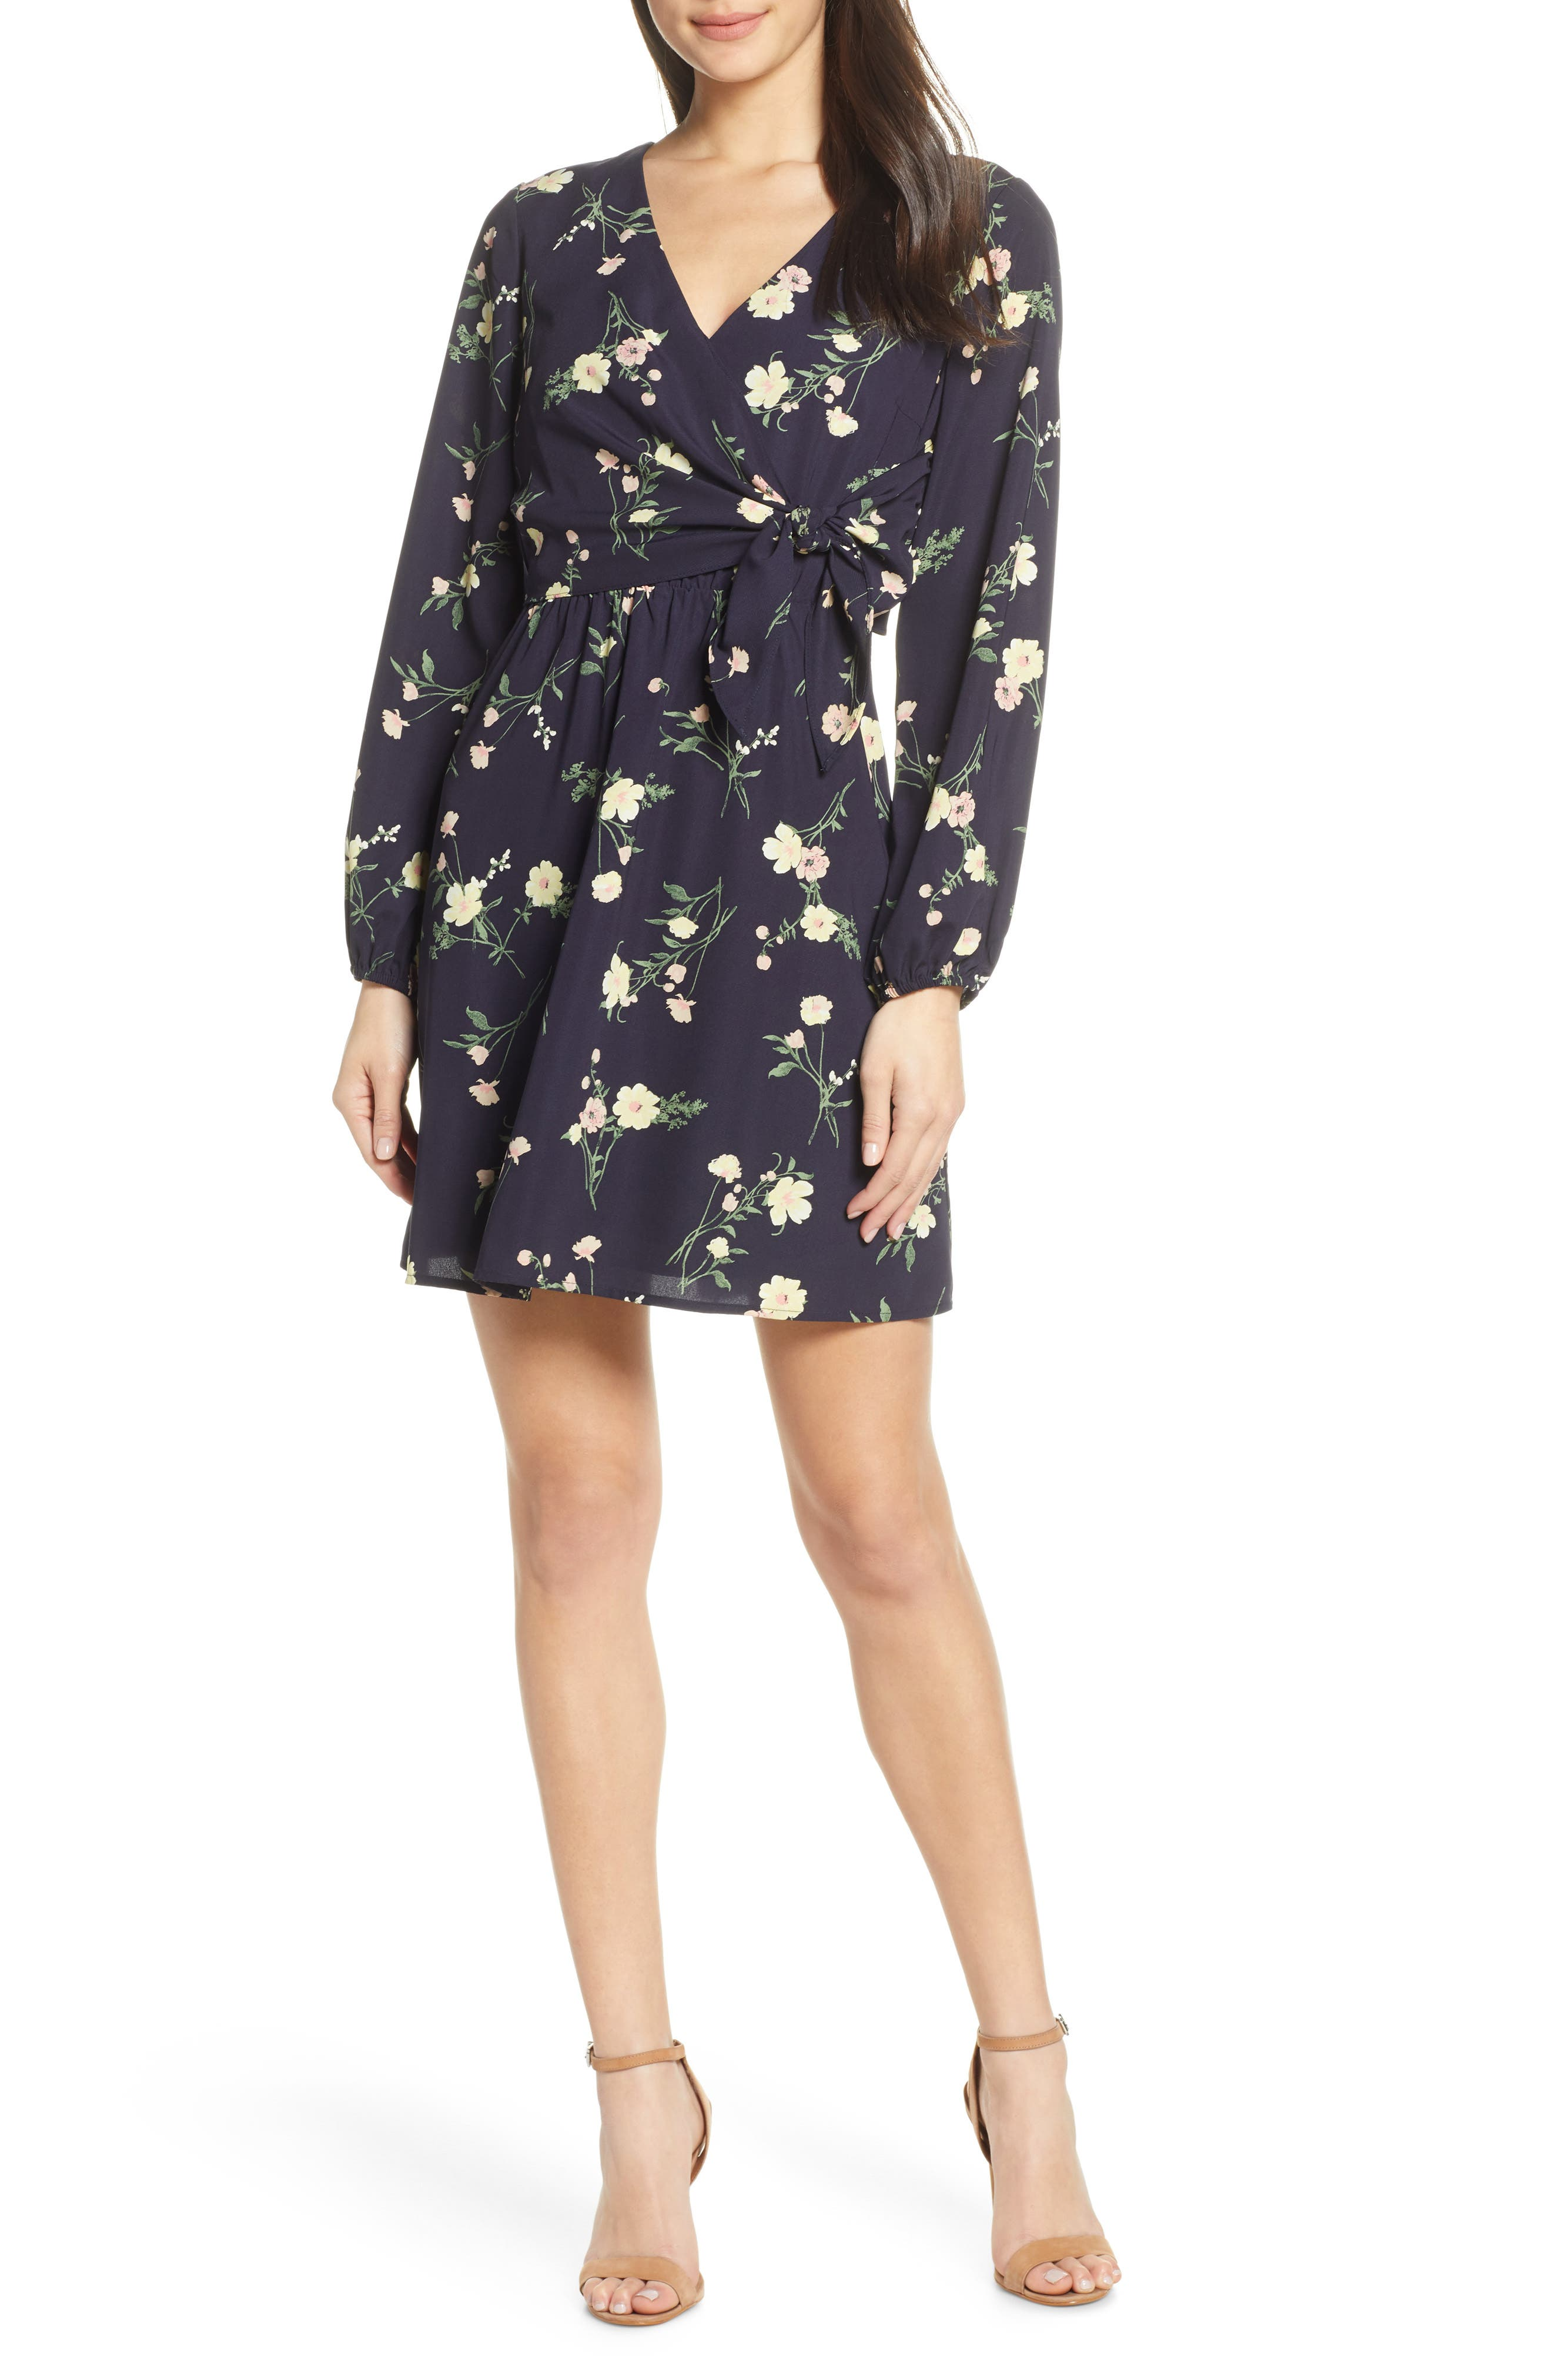 19 COOPER, Long Sleeve Floral Dress, Main thumbnail 1, color, NAVY FLORAL